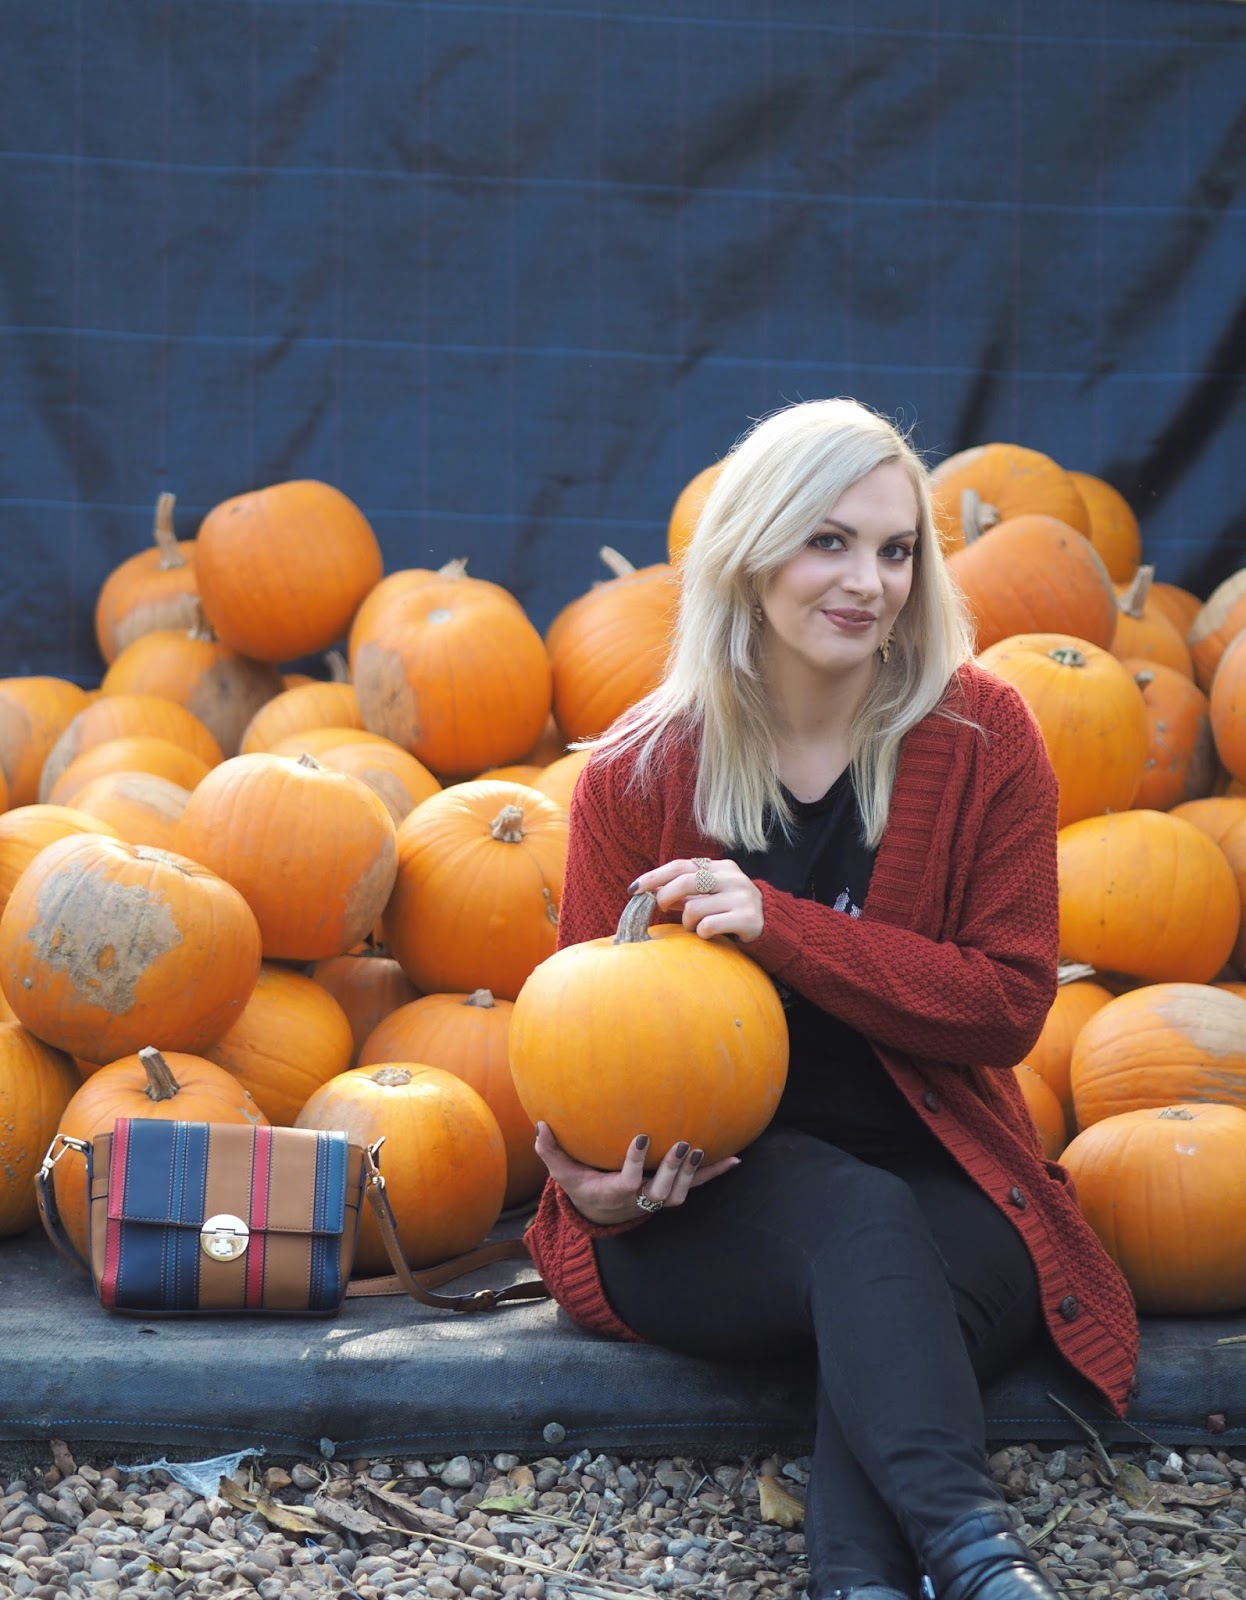 Autumn Oranges & Pumpkin Picking, Katie Kirk Loves, UK Blogger, Fashion Blogger, Oasis Fashion, Autumn Style, Autumn Outfit Ideas, Autumn Fashion, Asos, Boohoo, Yumi, Next, Accessorize, Style Blogger, Fashion Influencer, Style Influencer, Fashion Discount Code